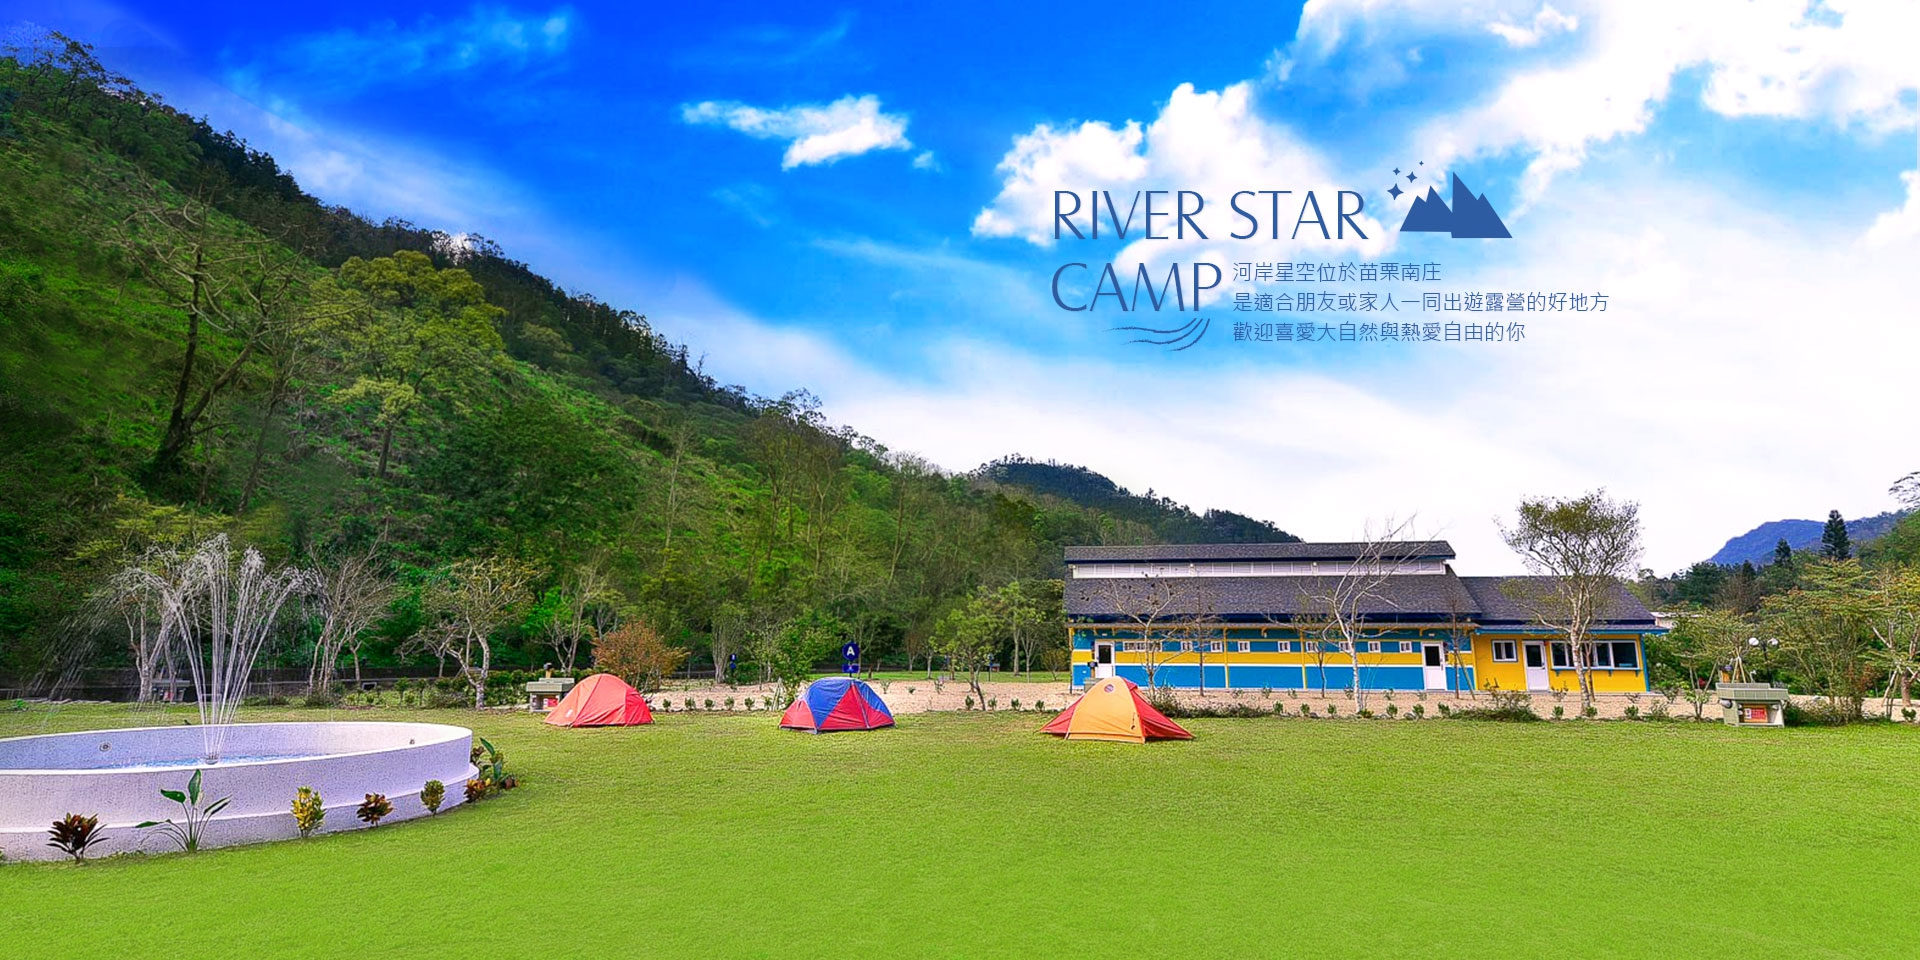 River Star Camp